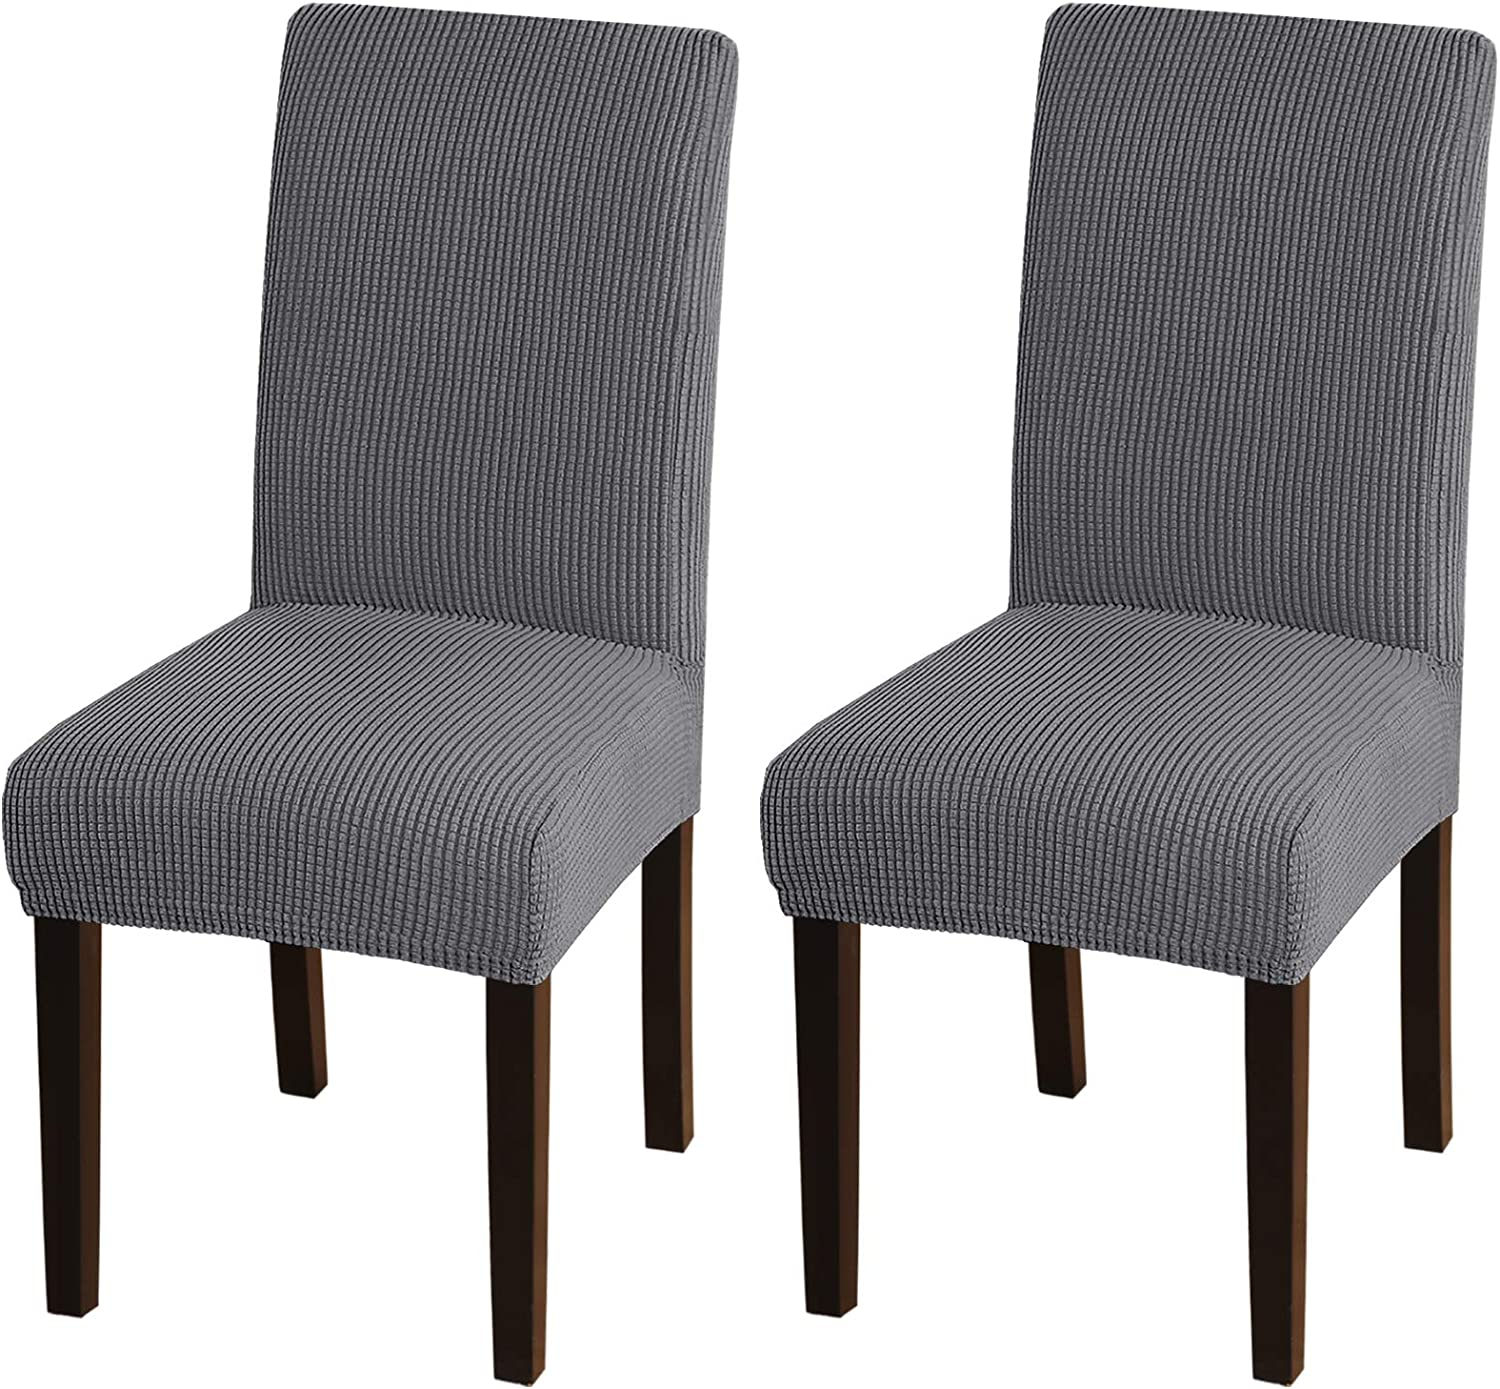 Turquoize Chair Covers for Dining Room Dining Chair Covers Set of 2 Stretch Dining Chair Slipcover Parsons Chair Covers Removable Chair Protector Covers for Dining Room, Hotel, Ceremony (2, Grey): Furniture & Decor